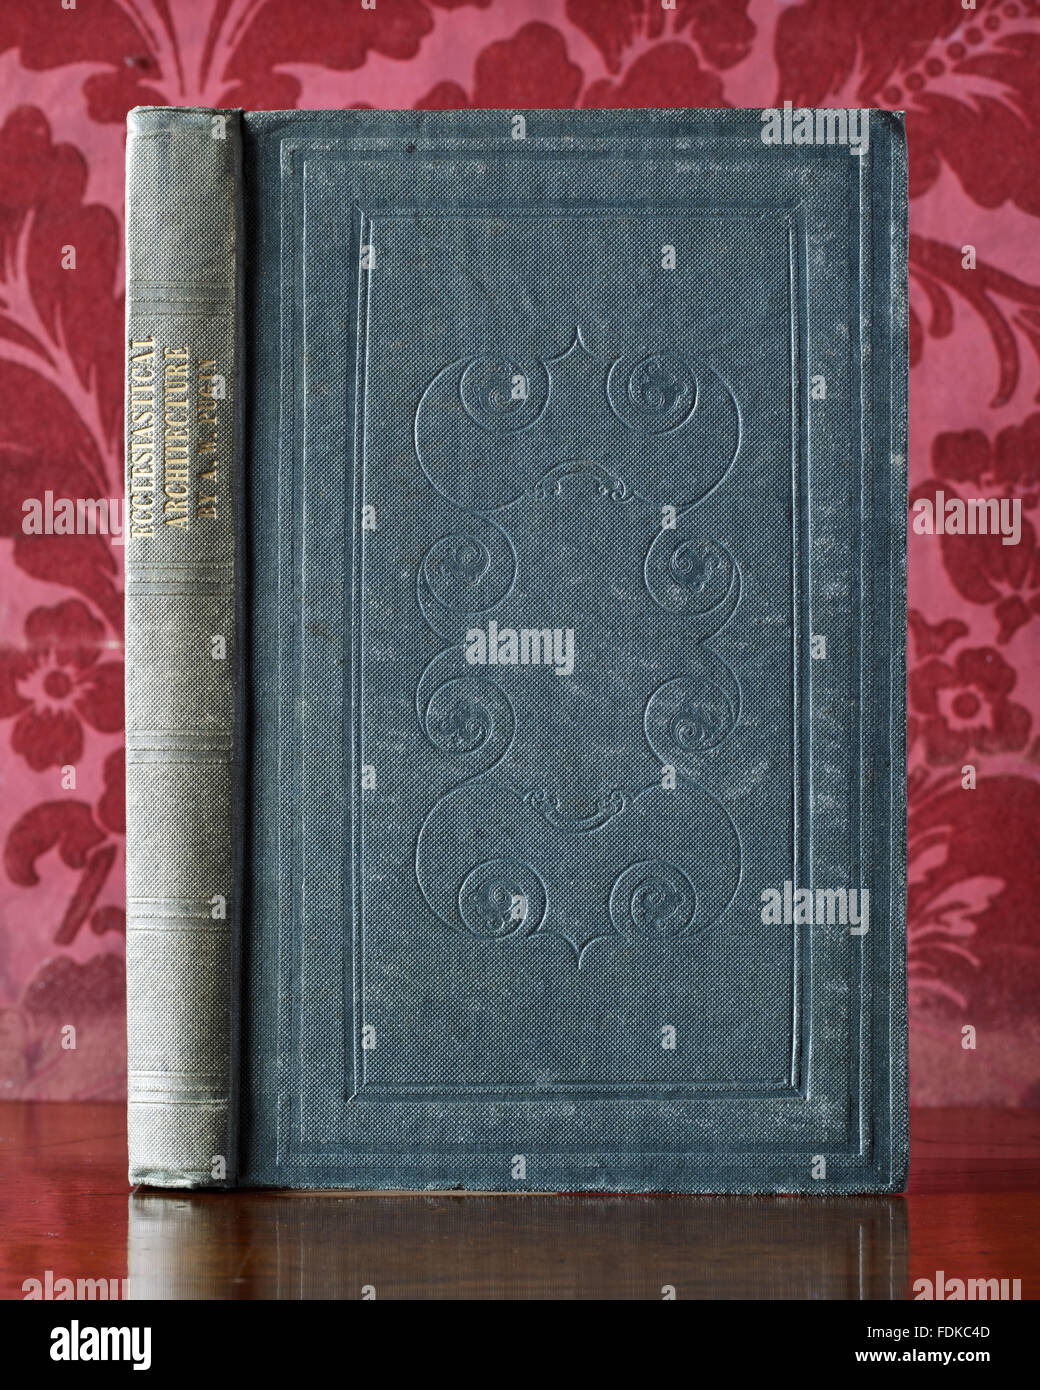 Binding of A.W.N. Pugin, The Present State of Ecclesiastical Architecture in England (London, 1843), at Chirk Castle, - Stock Image